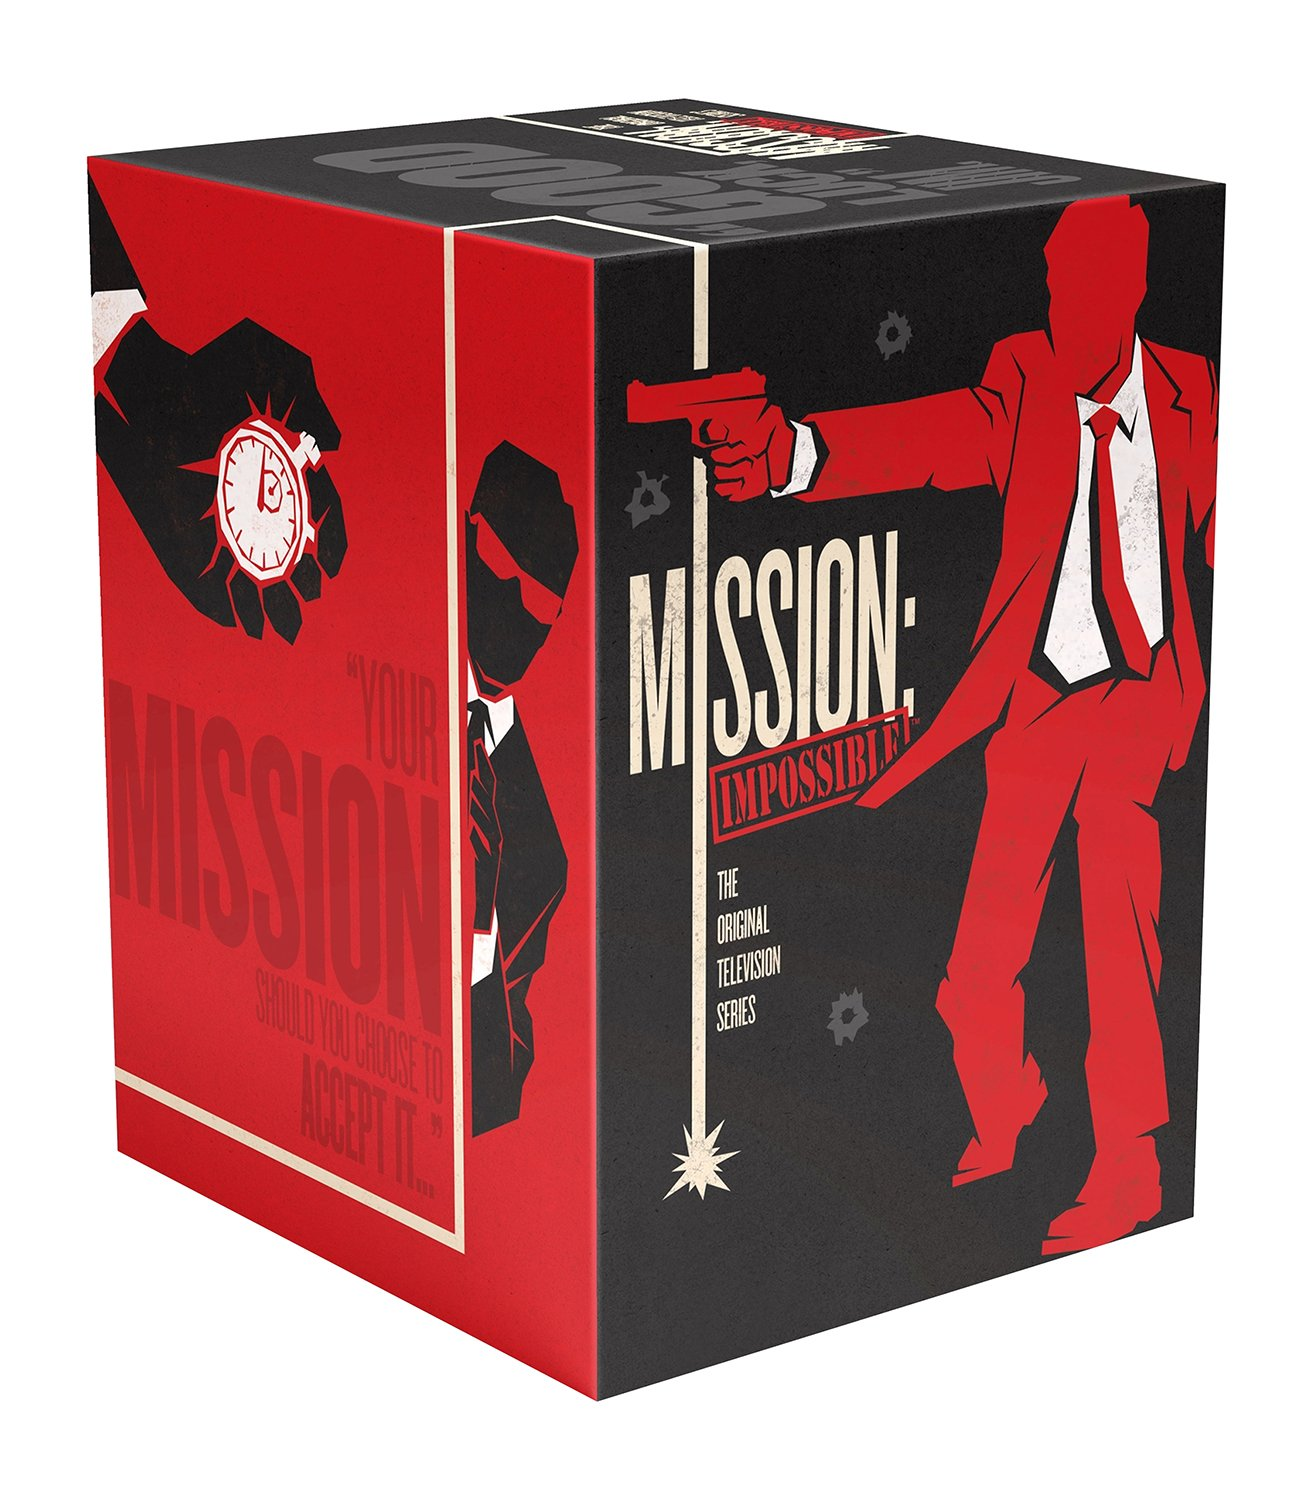 Mission: Impossible: The Original TV Series by Paramount